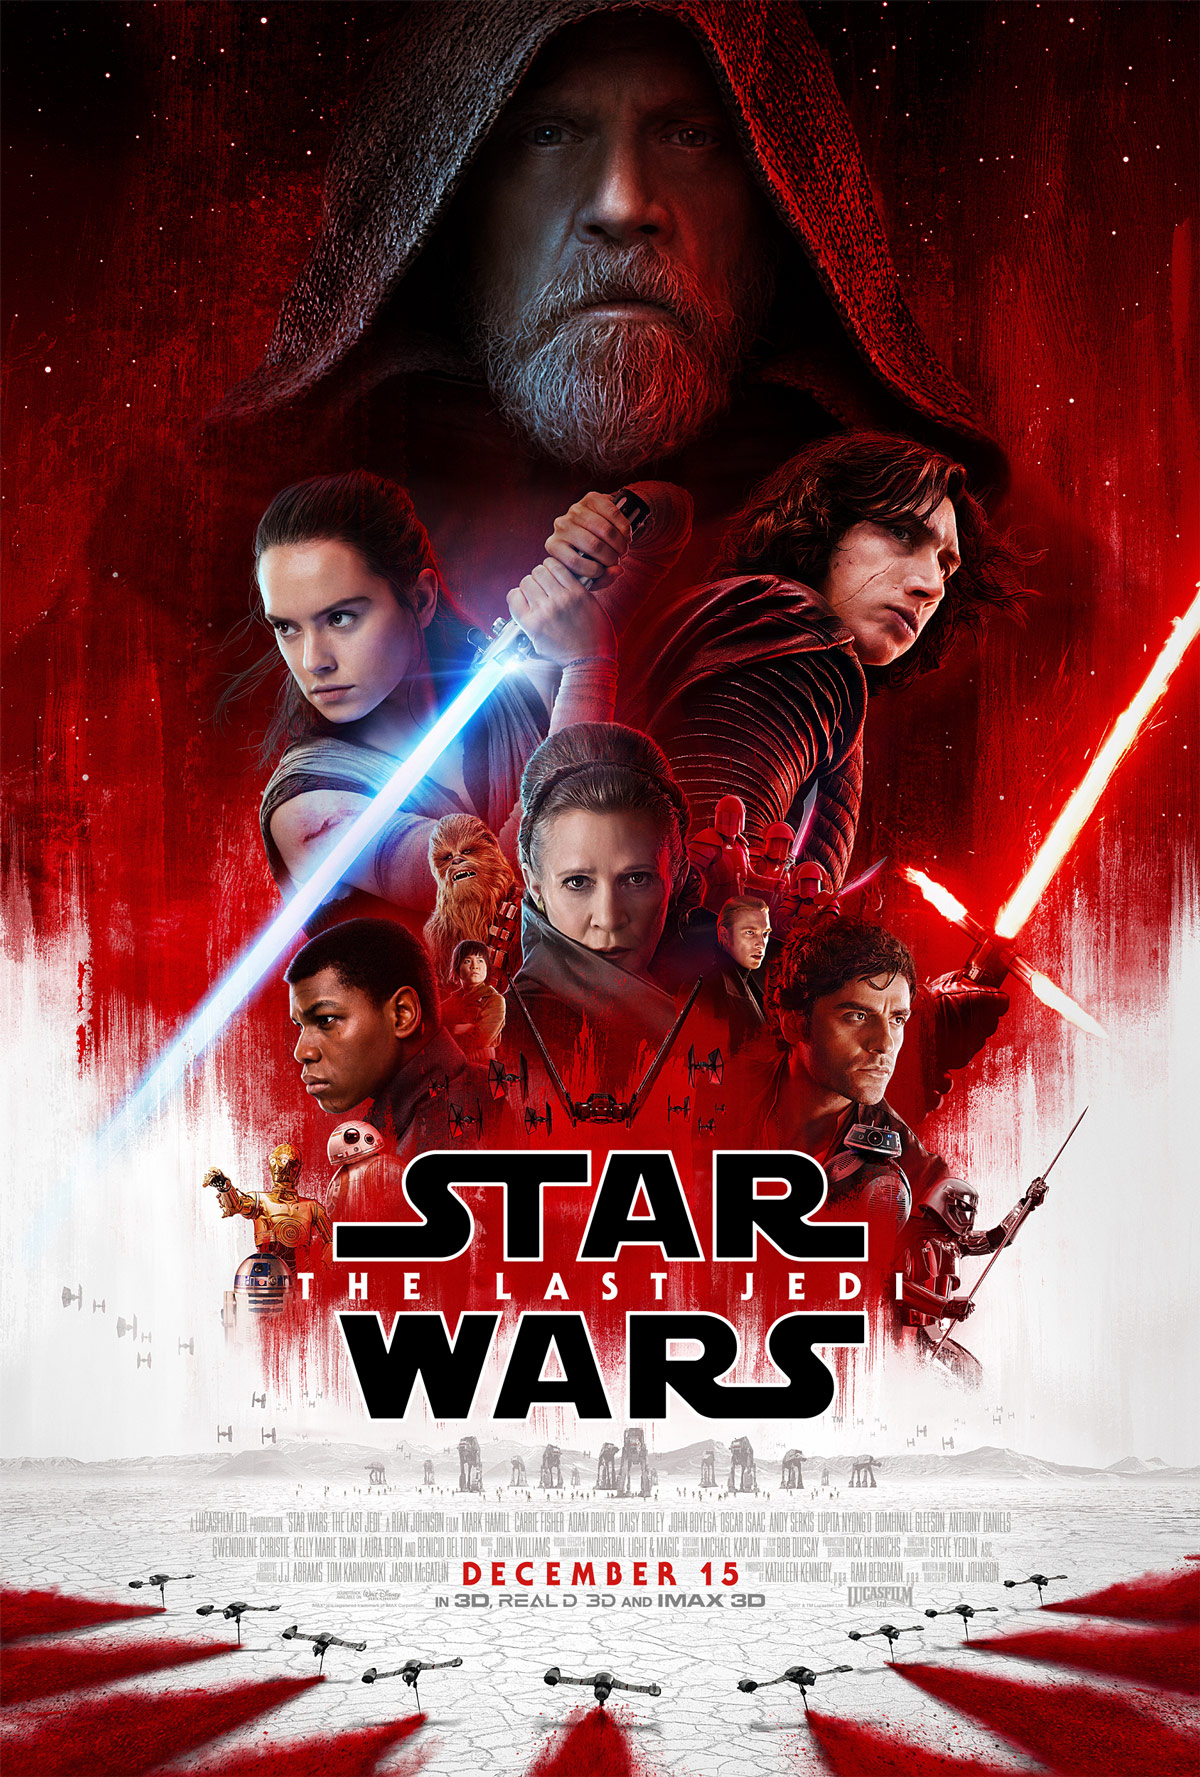 The Society of Composers and Lyricists Screening: Star Wars: The Last Jedi